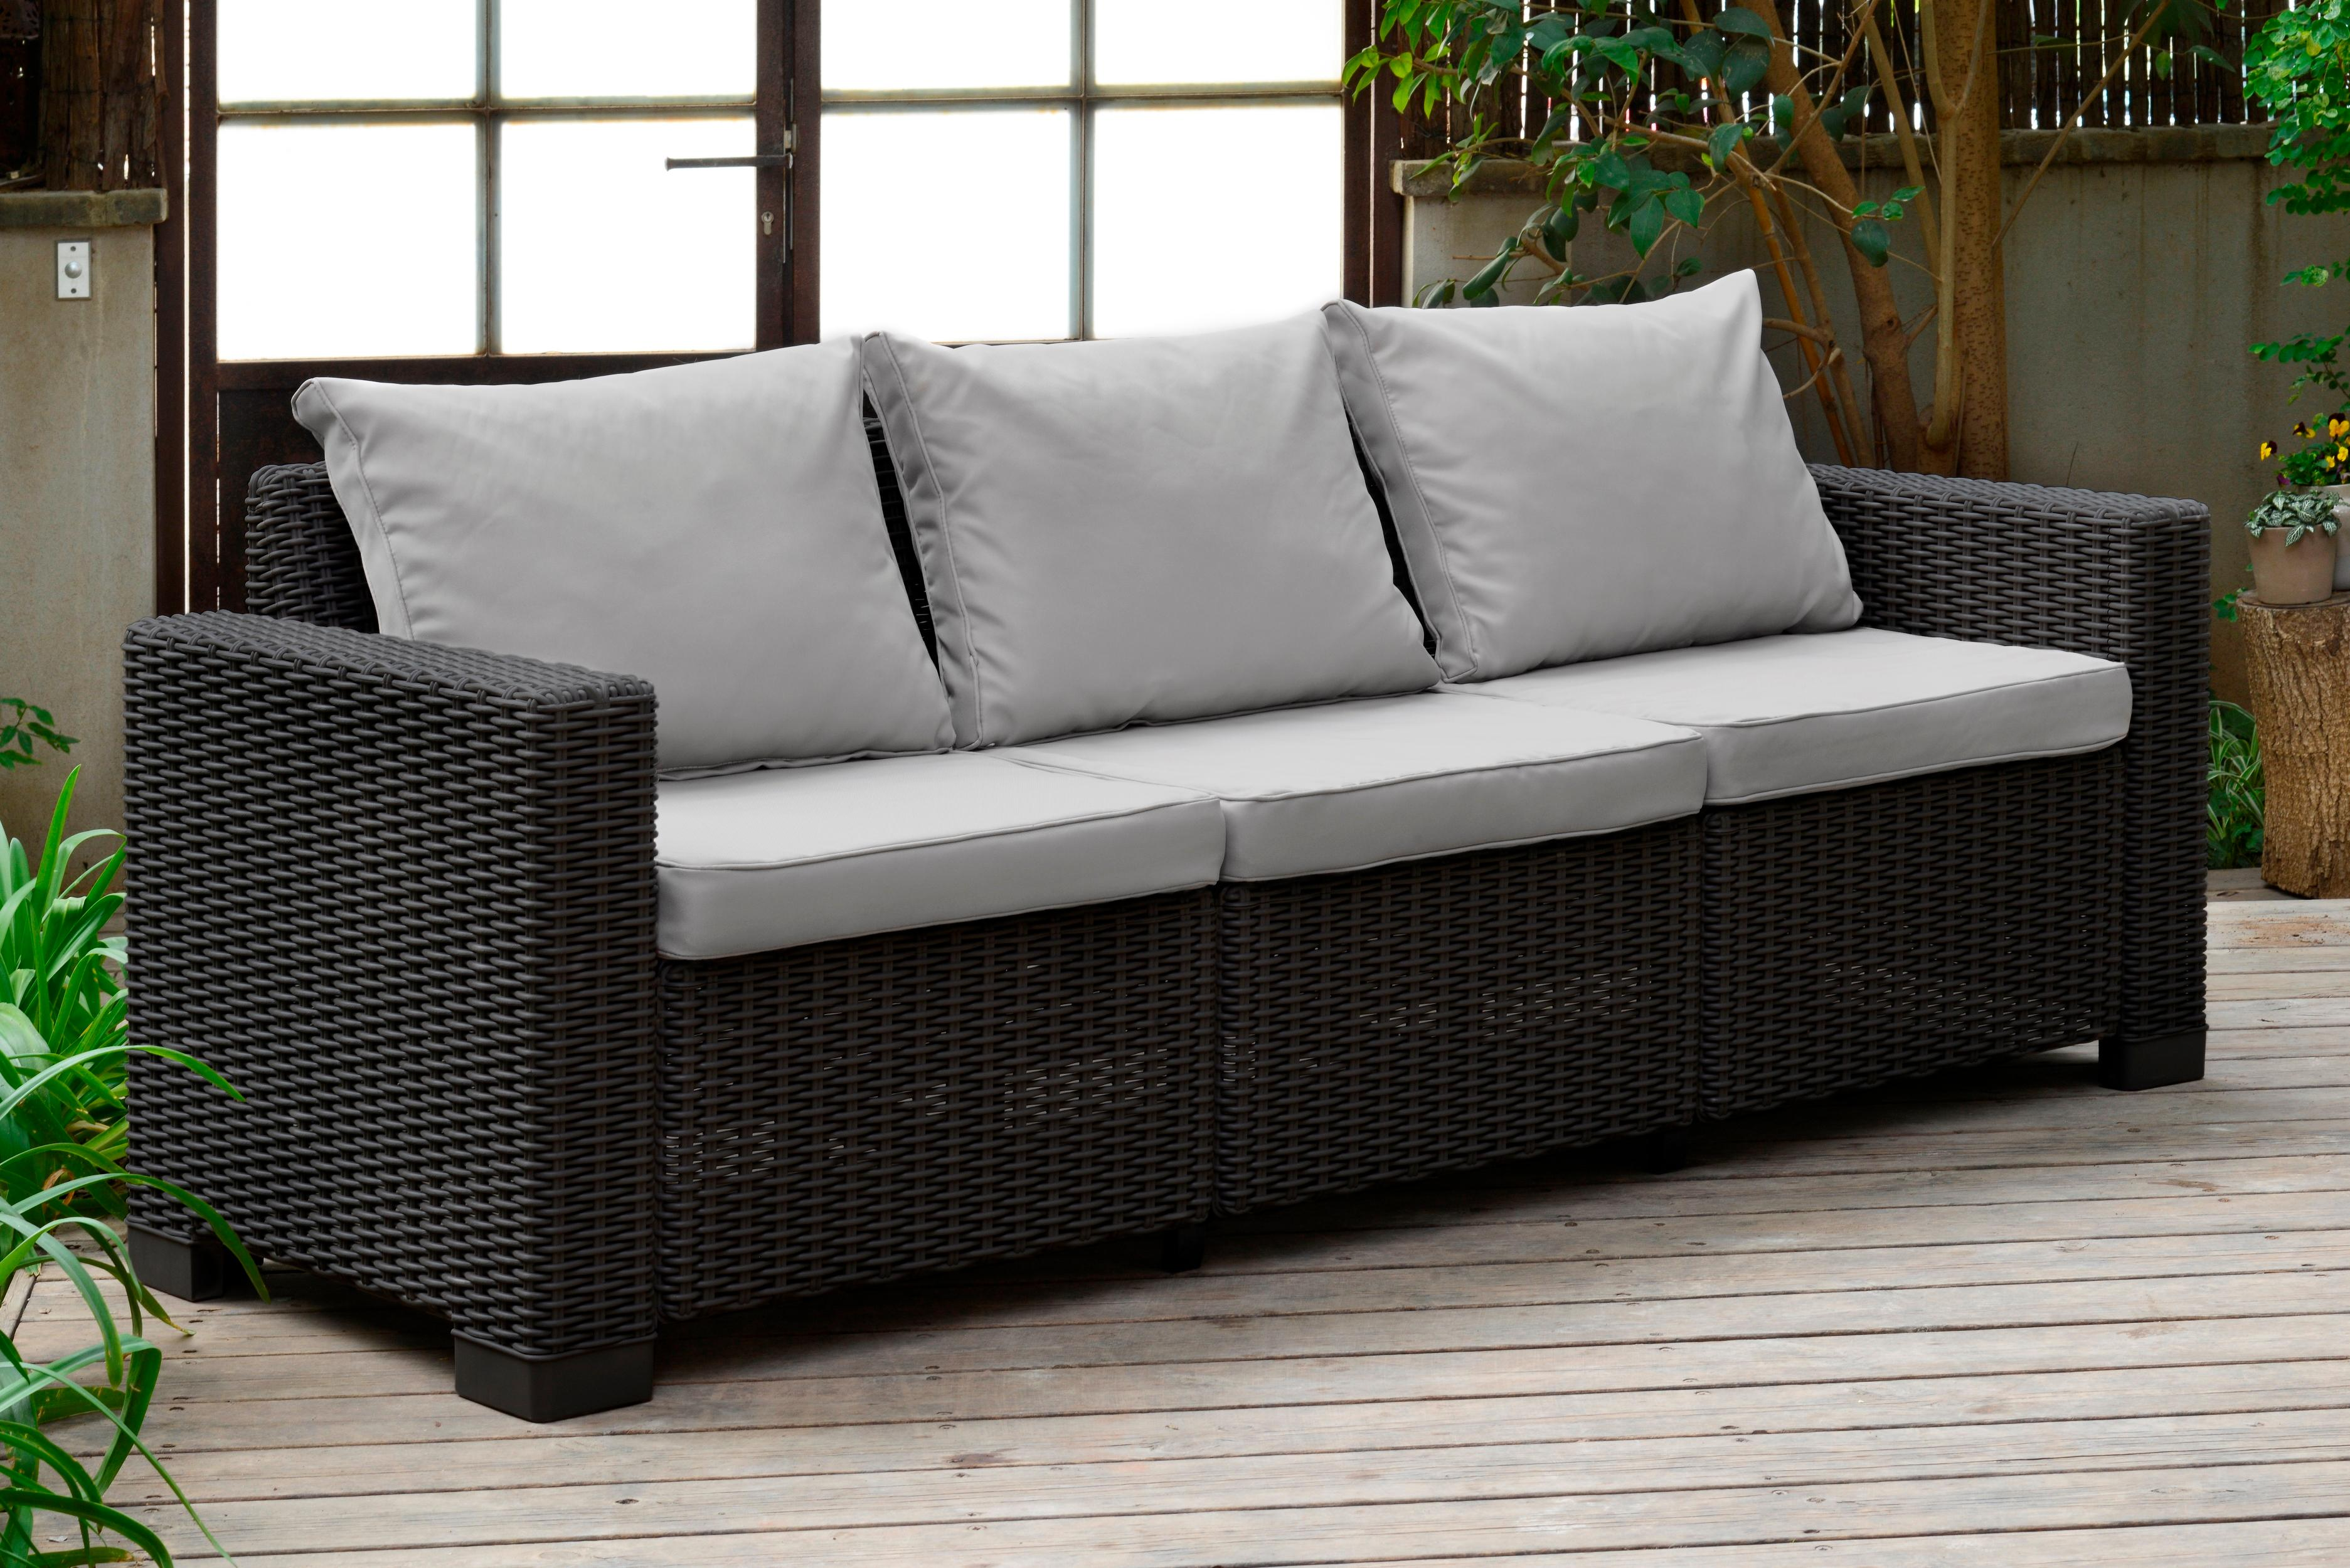 lounge sofa balkon g nstig erindzain. Black Bedroom Furniture Sets. Home Design Ideas